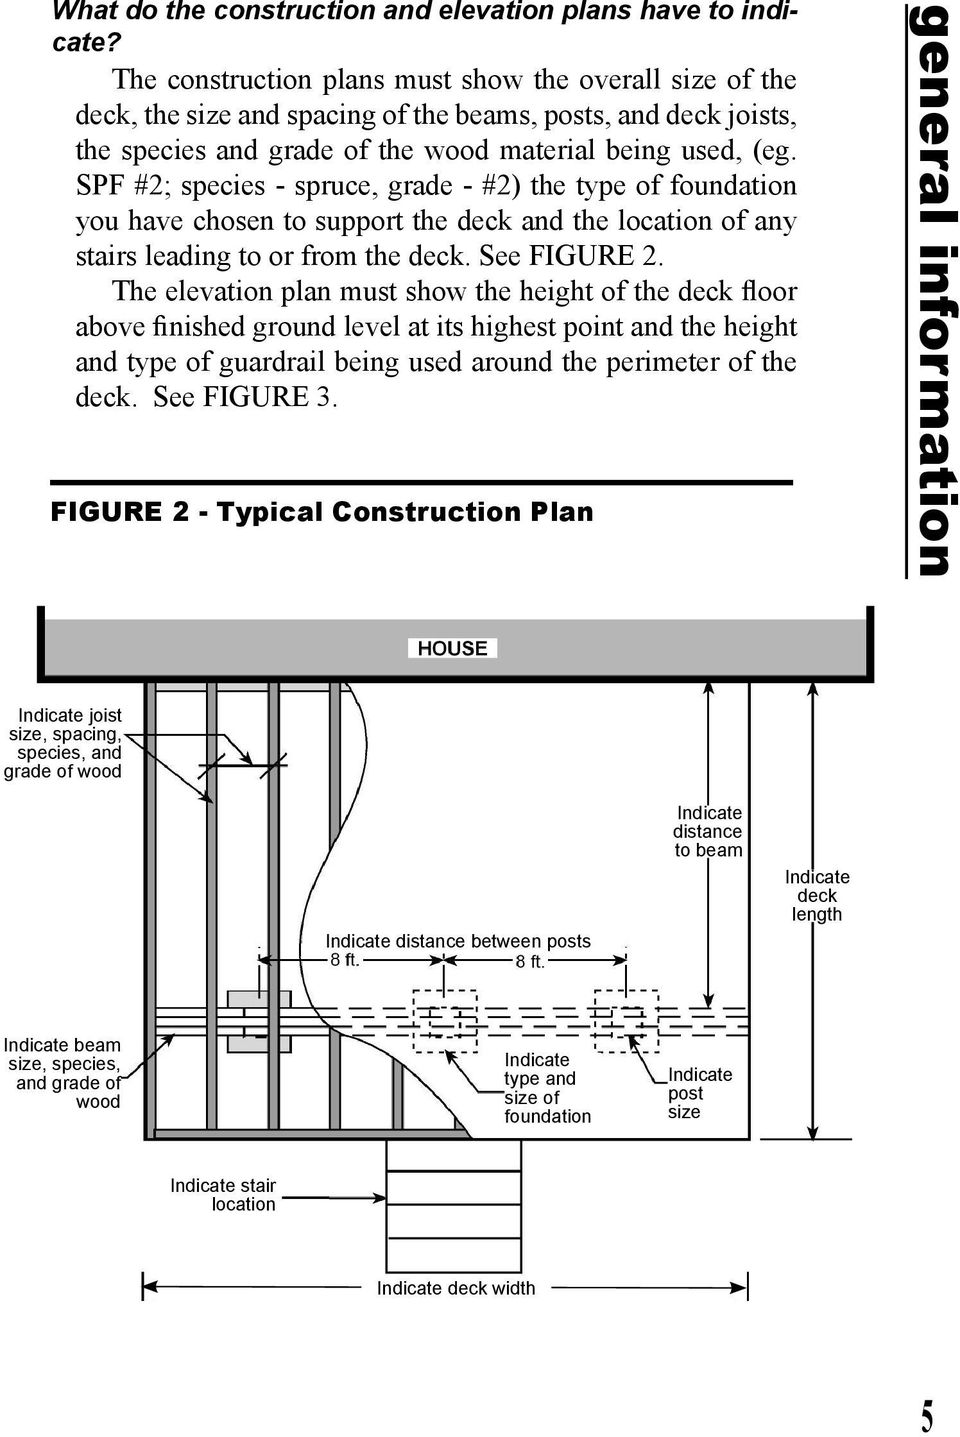 SPF #2; species - spruce, grade - #2) the type of foundation you have chosen to support the deck and the location of any stairs leading to or from the deck. See FIGURE 2.